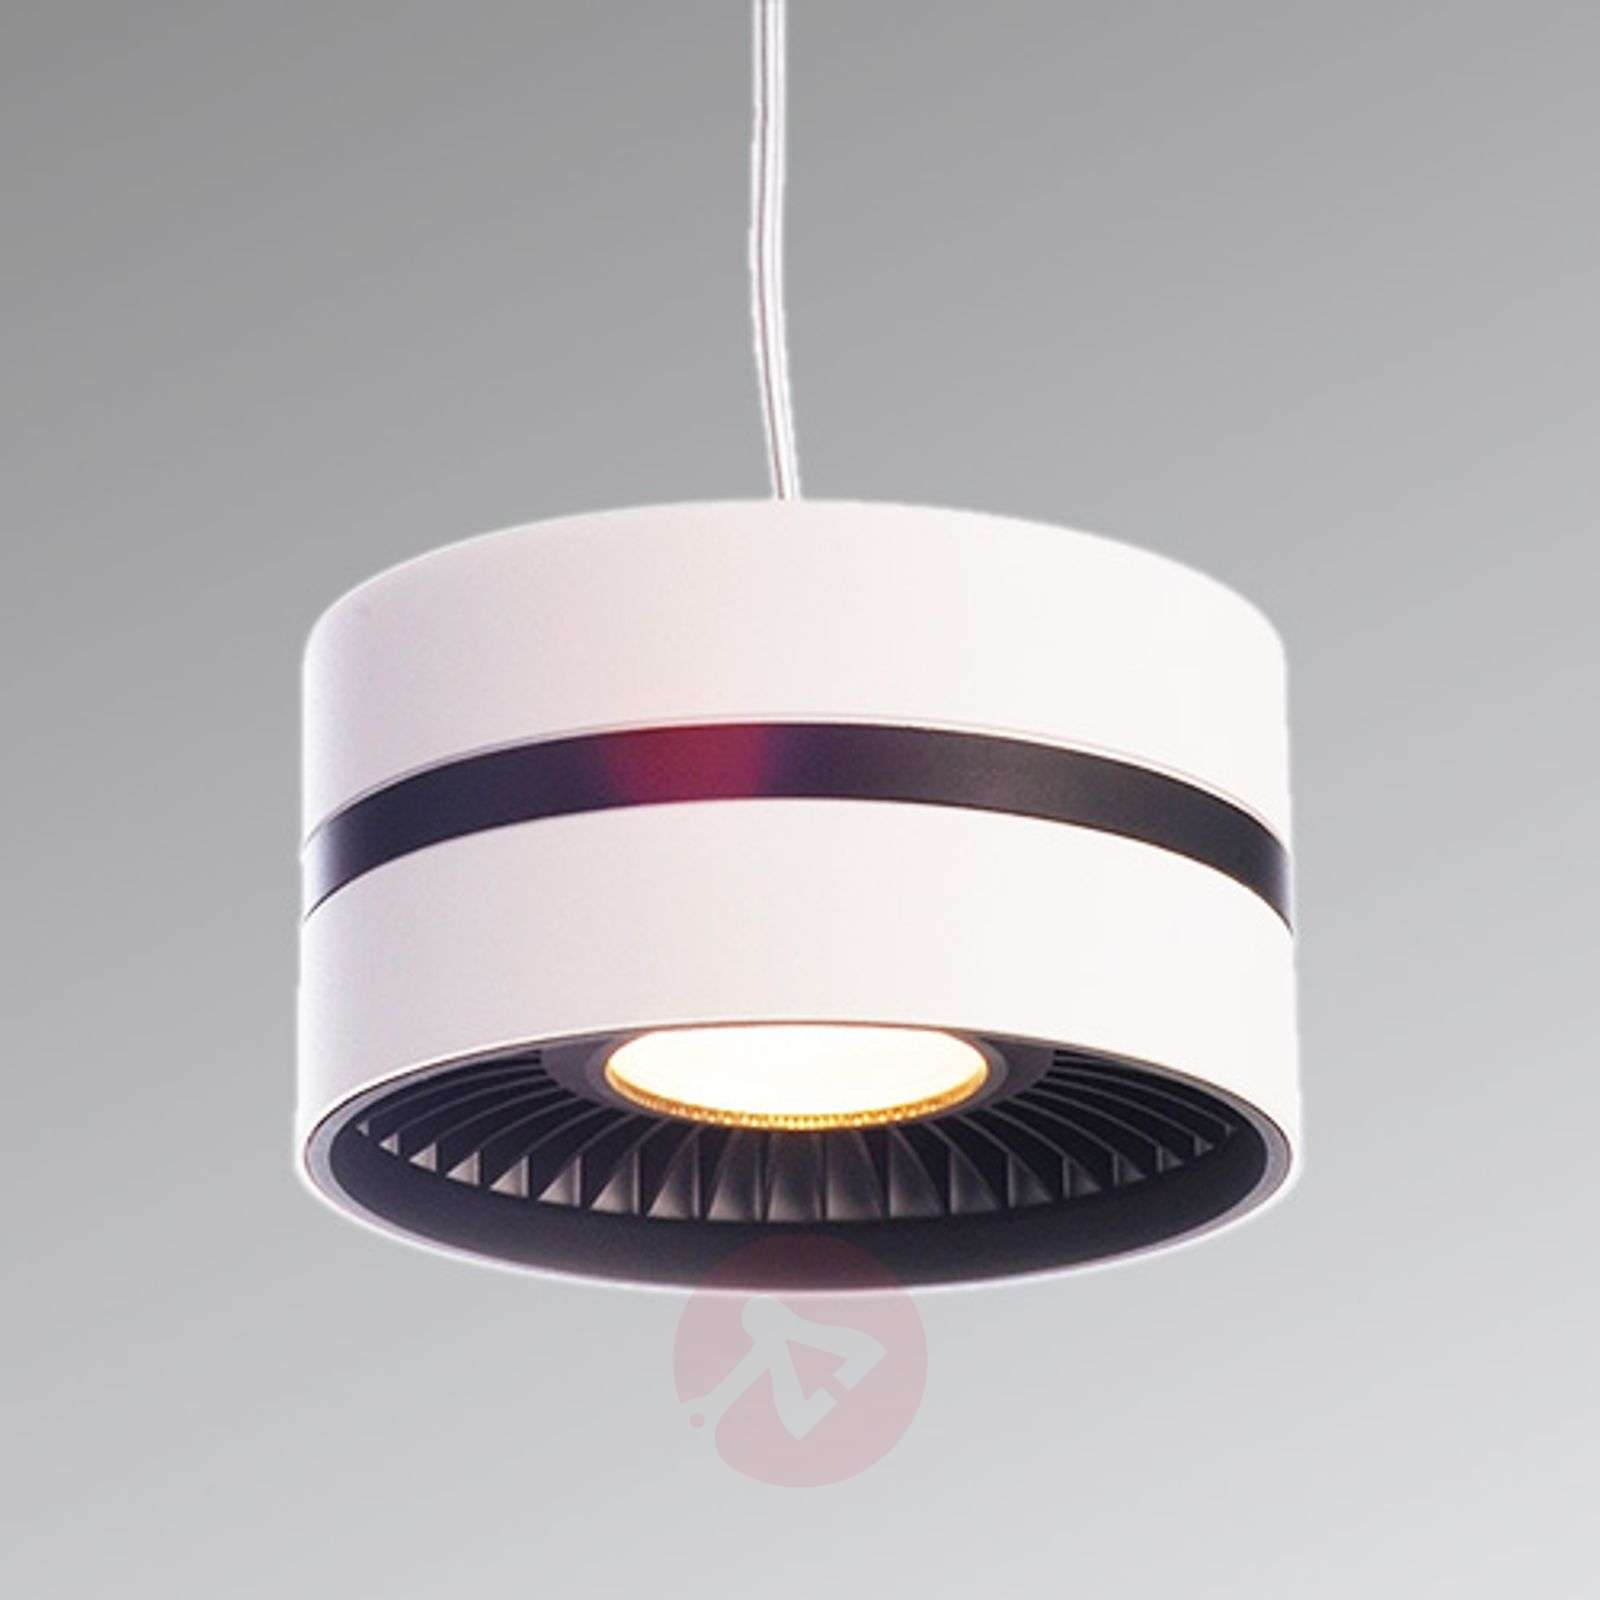 Lampa wisząca Black and White III z LED-2500051-01